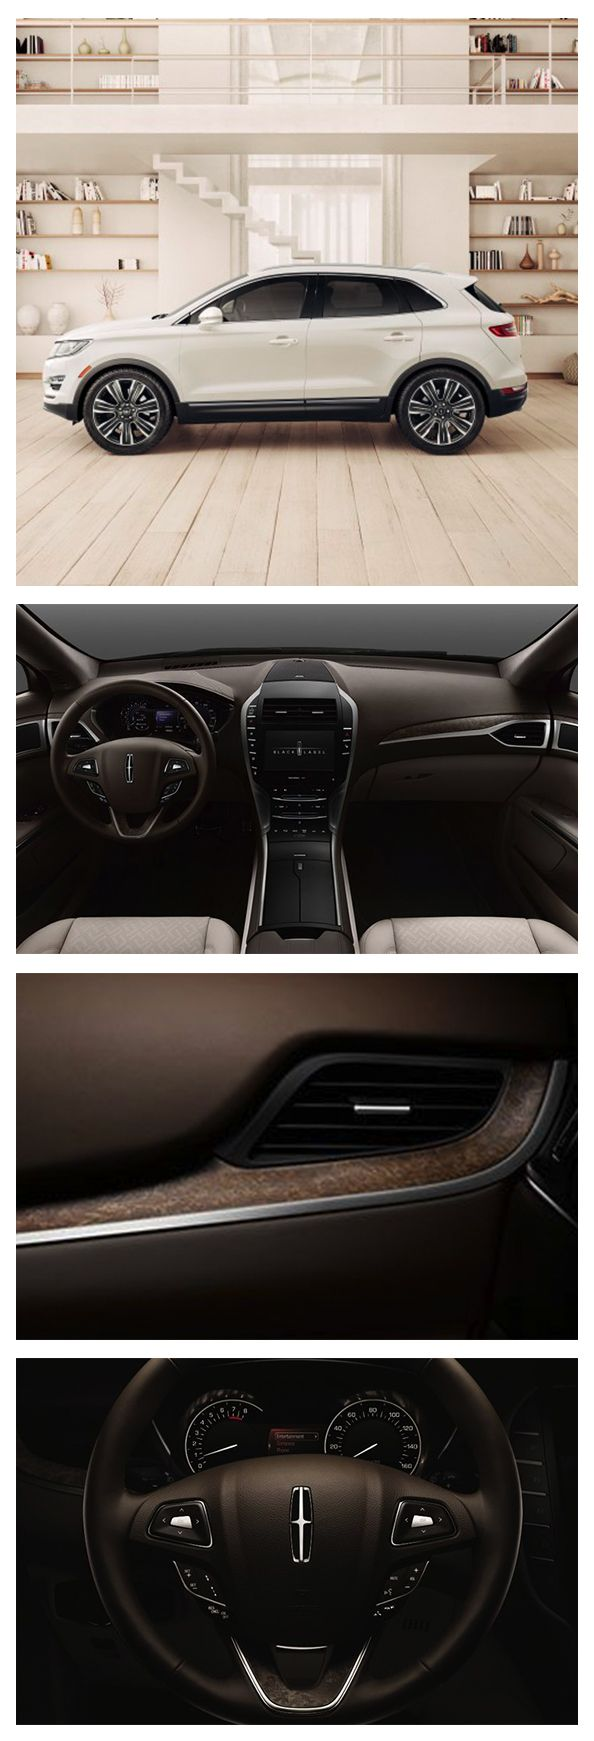 A two-toned palette of khaki and cream was the key to creating the calming environment of the Oasis Lincoln MKC, while a bright Confidential White exterior lets the vehicle's sculpted lines stand out on the road.